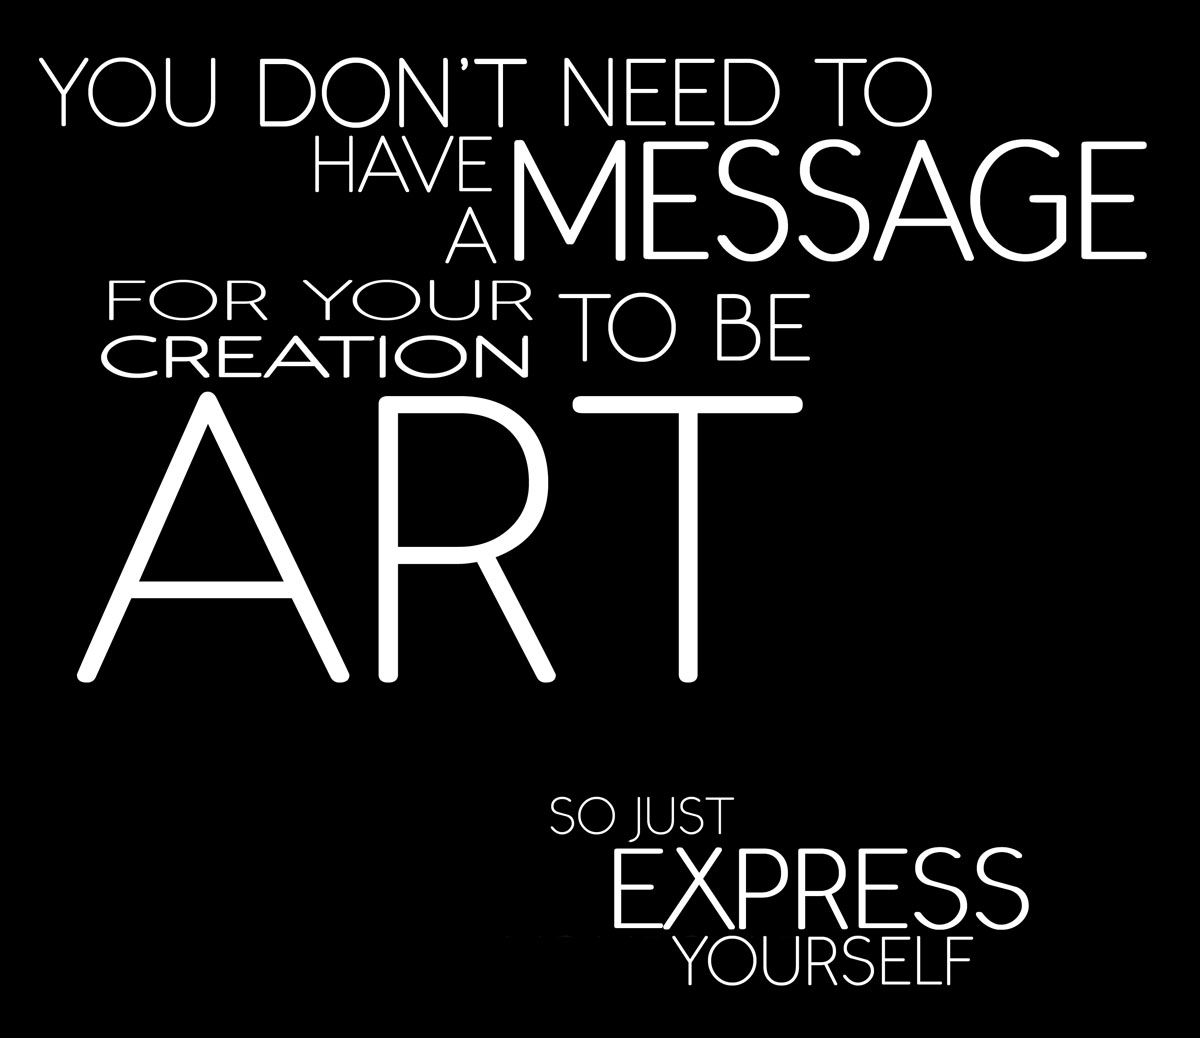 Expressing Quotes: Call To Artists! Express Yourself